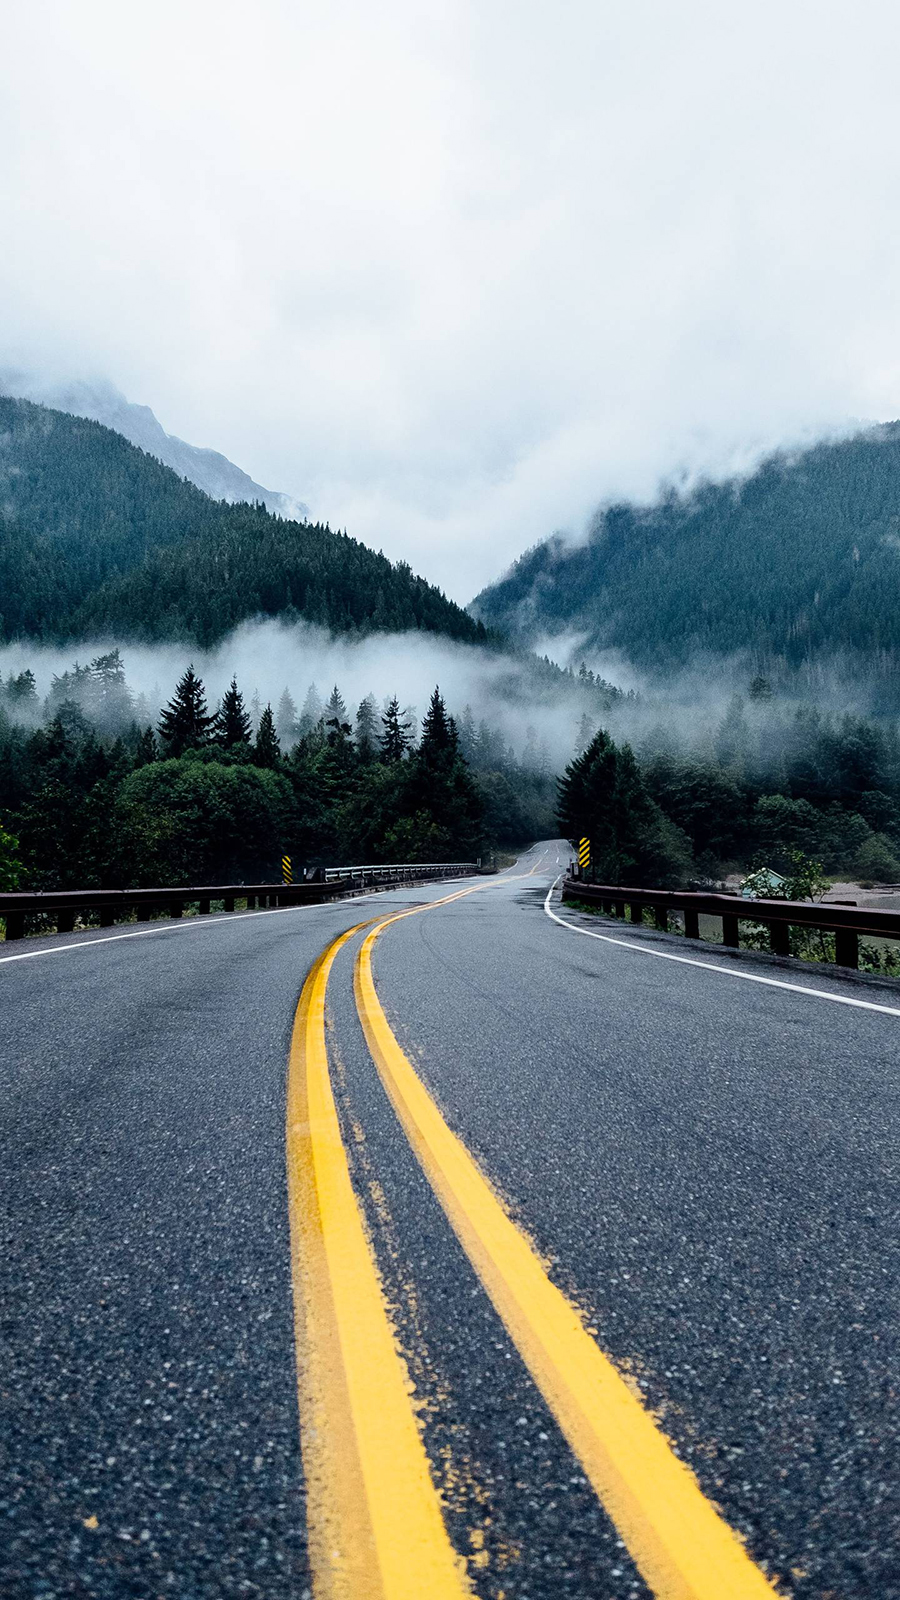 Road Wallpapers Now Download For Your Device